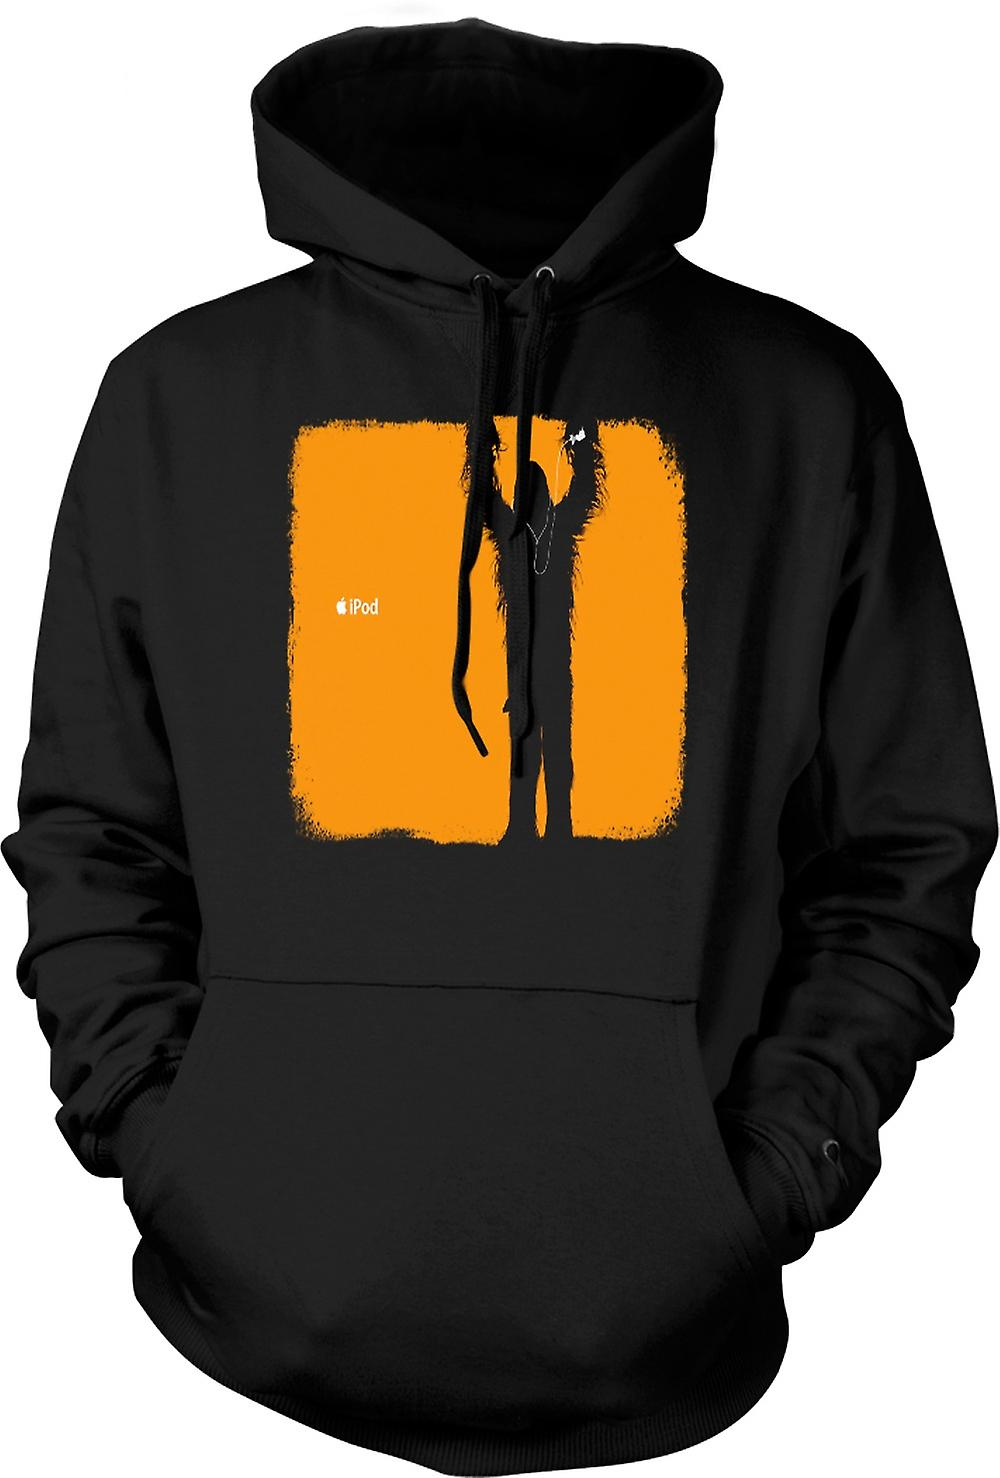 Mens Hoodie - Star Wars - Chewbacca iPod